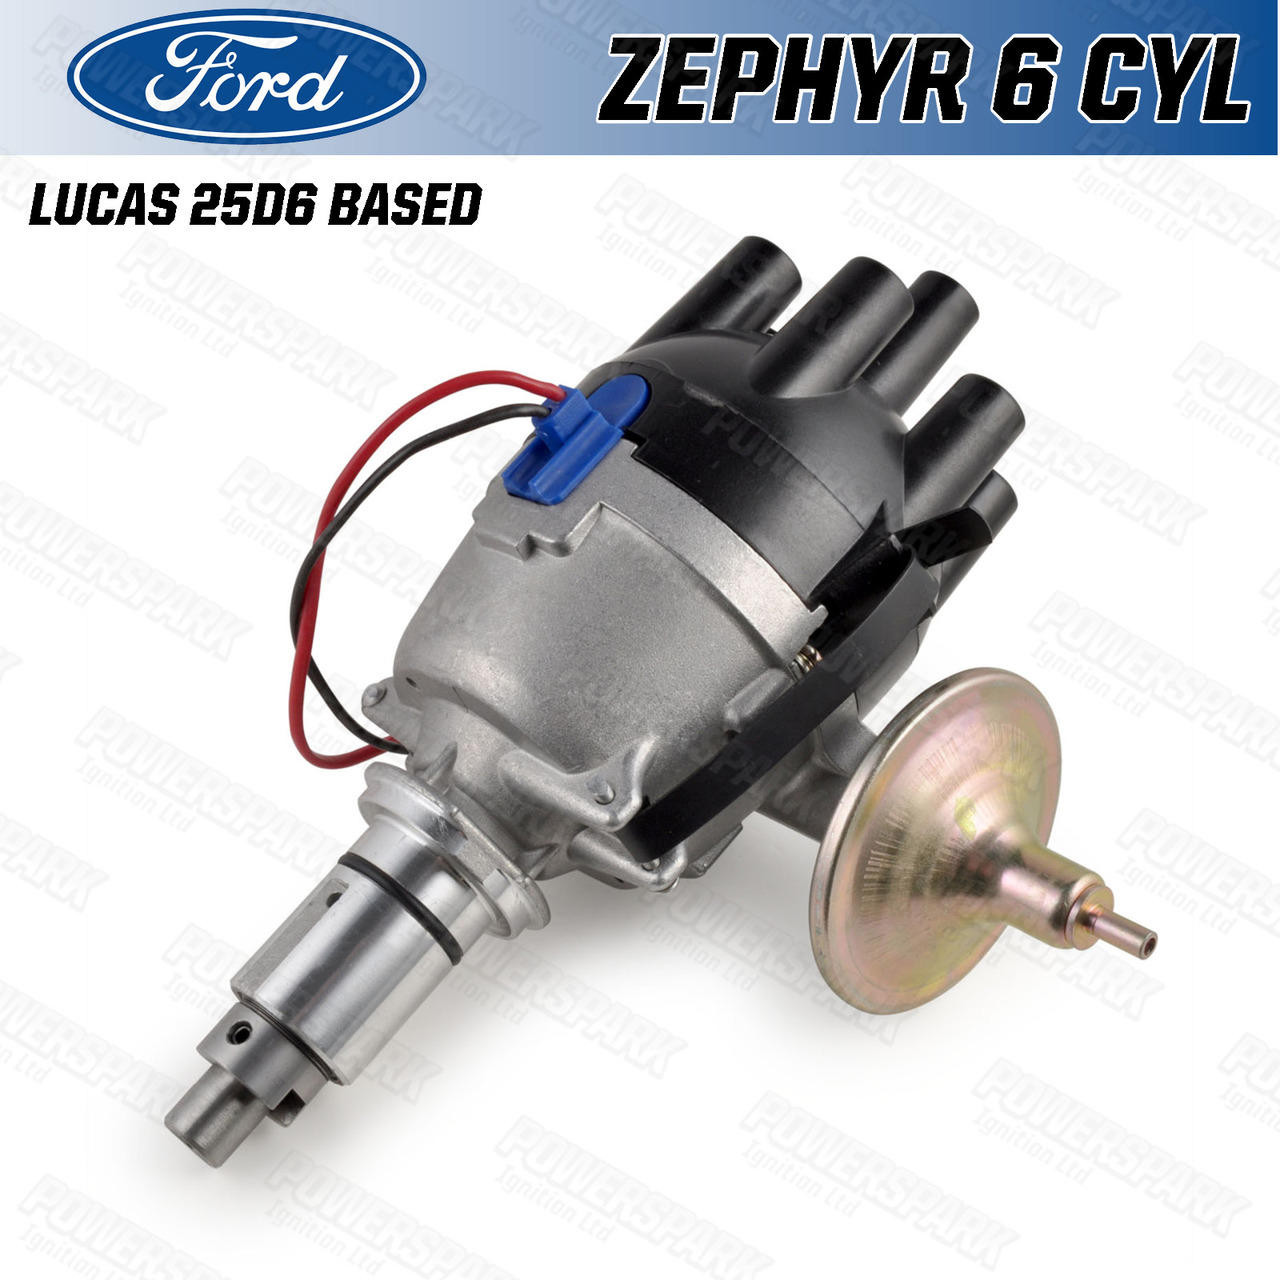 Powerspark Ford Zephyr and Zodiac 6 Cylinder 25D6 Type Distributor